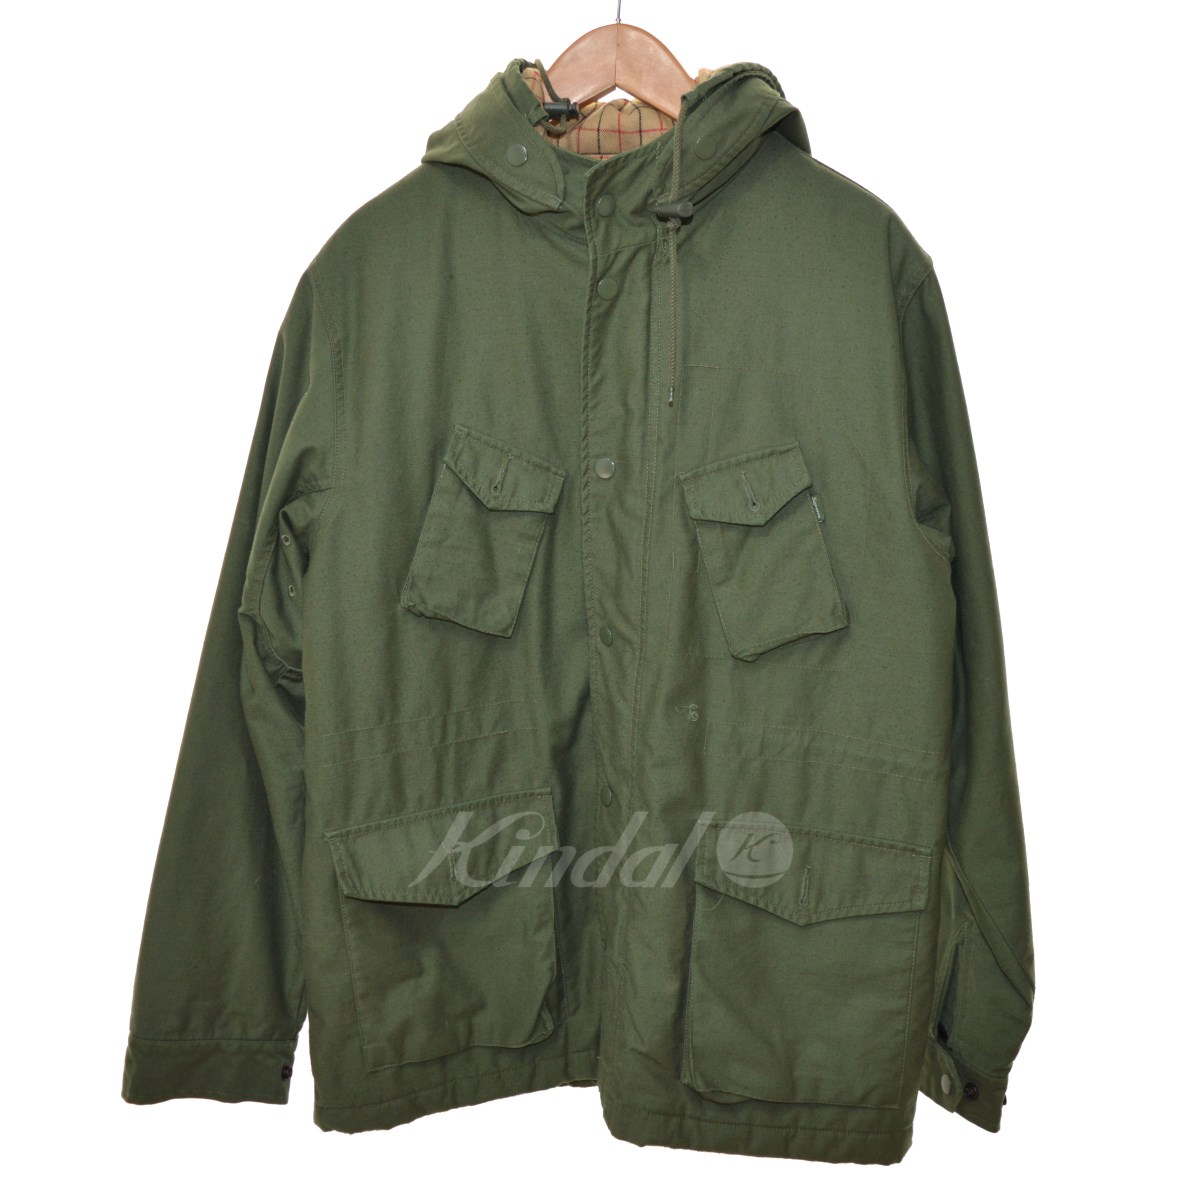 【中古】SUPREME Hooded Field Jacket M65ジャケット 【送料無料】 【124317】 【KIND1550】